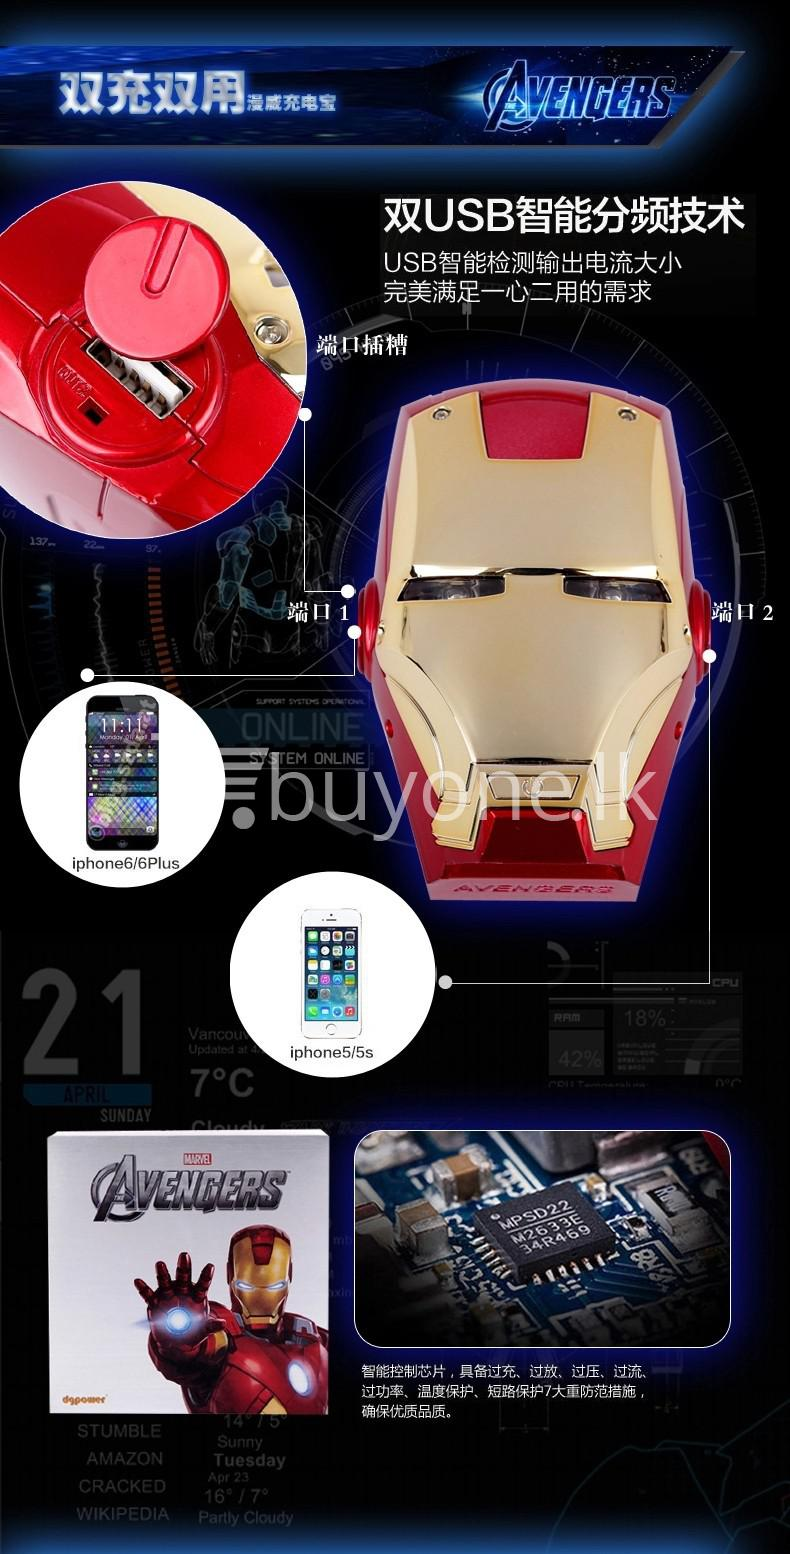 newest iron man portable power bank 6000mah for iphone samsung htc nokia oneplus mobile store special best offer buy one lk sri lanka 06543 - Newest Iron Man Portable Power Bank 6000mAh for iPhone, Samsung, HTC, Nokia, OnePlus